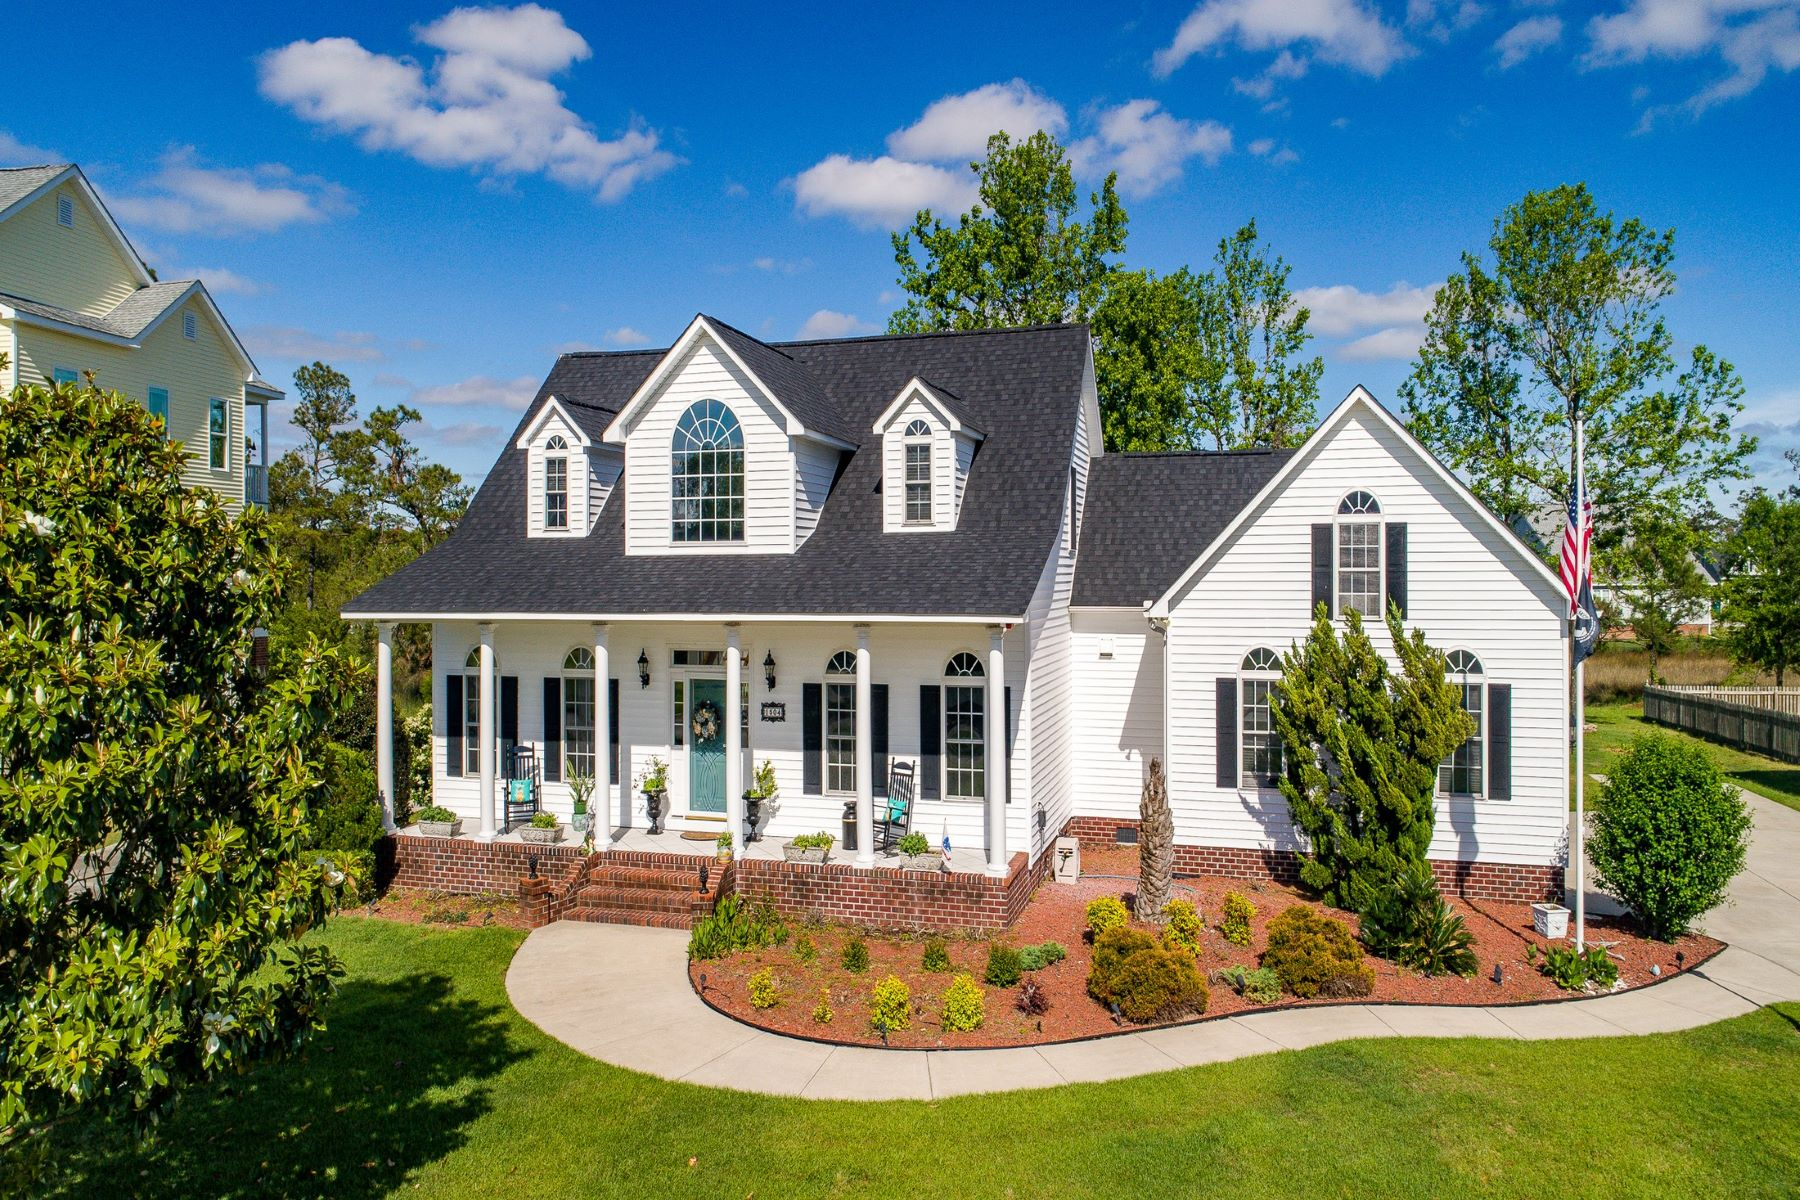 Single Family Home for Active at Waterfront Custom Built Home 1504 Dills Creek Lane Morehead City, North Carolina 28557 United States